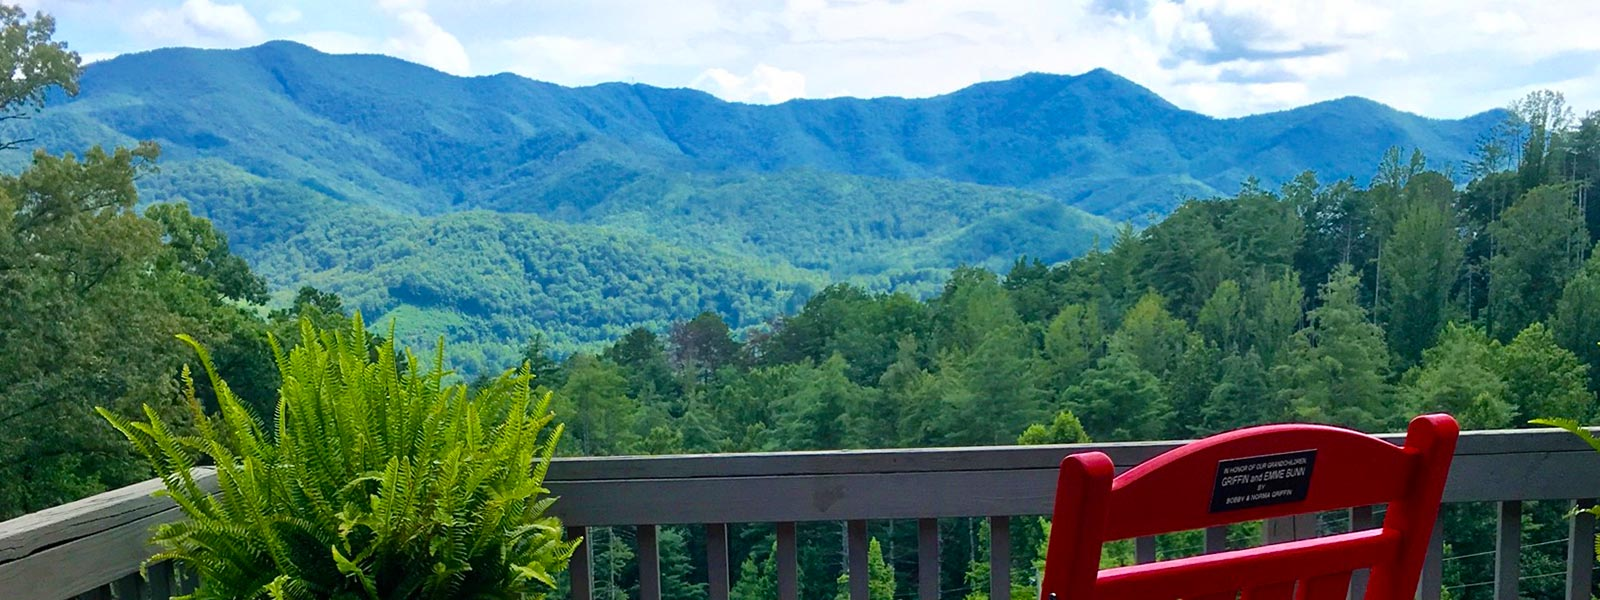 hemlock-inn-asheville-nc-blue-ridge-mountain-view